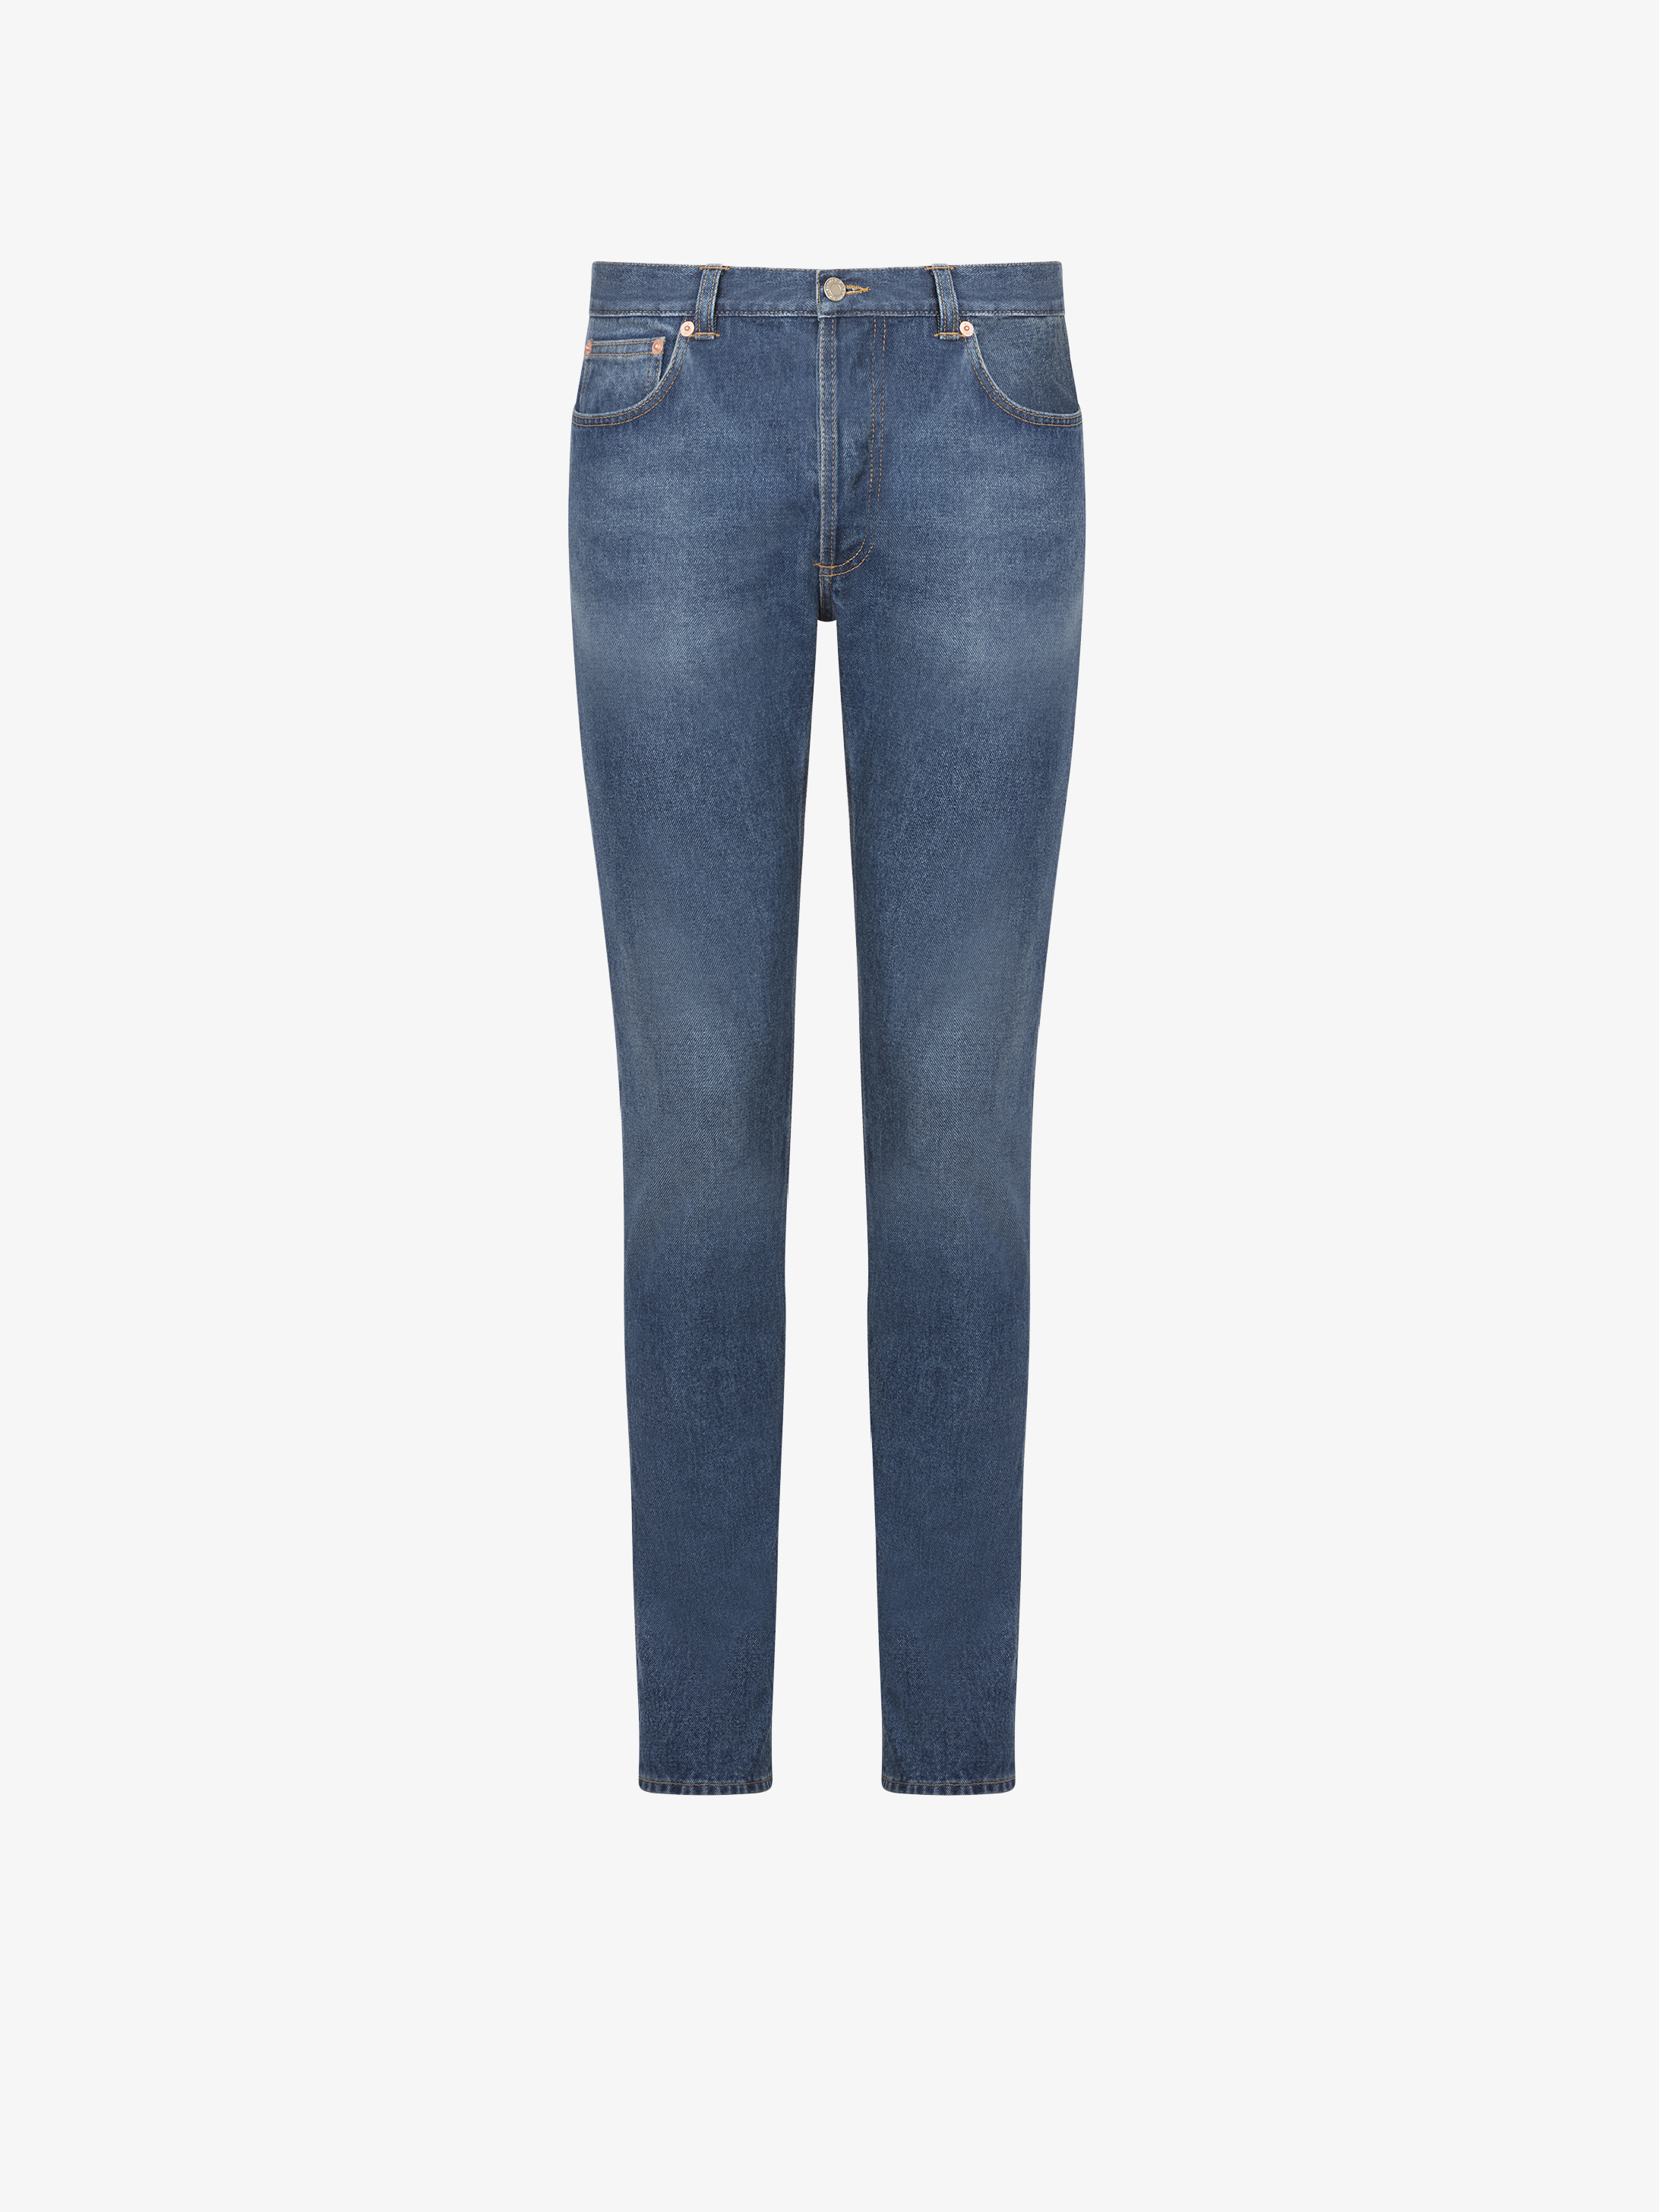 GIVENCHY PARIS stone washed jeans